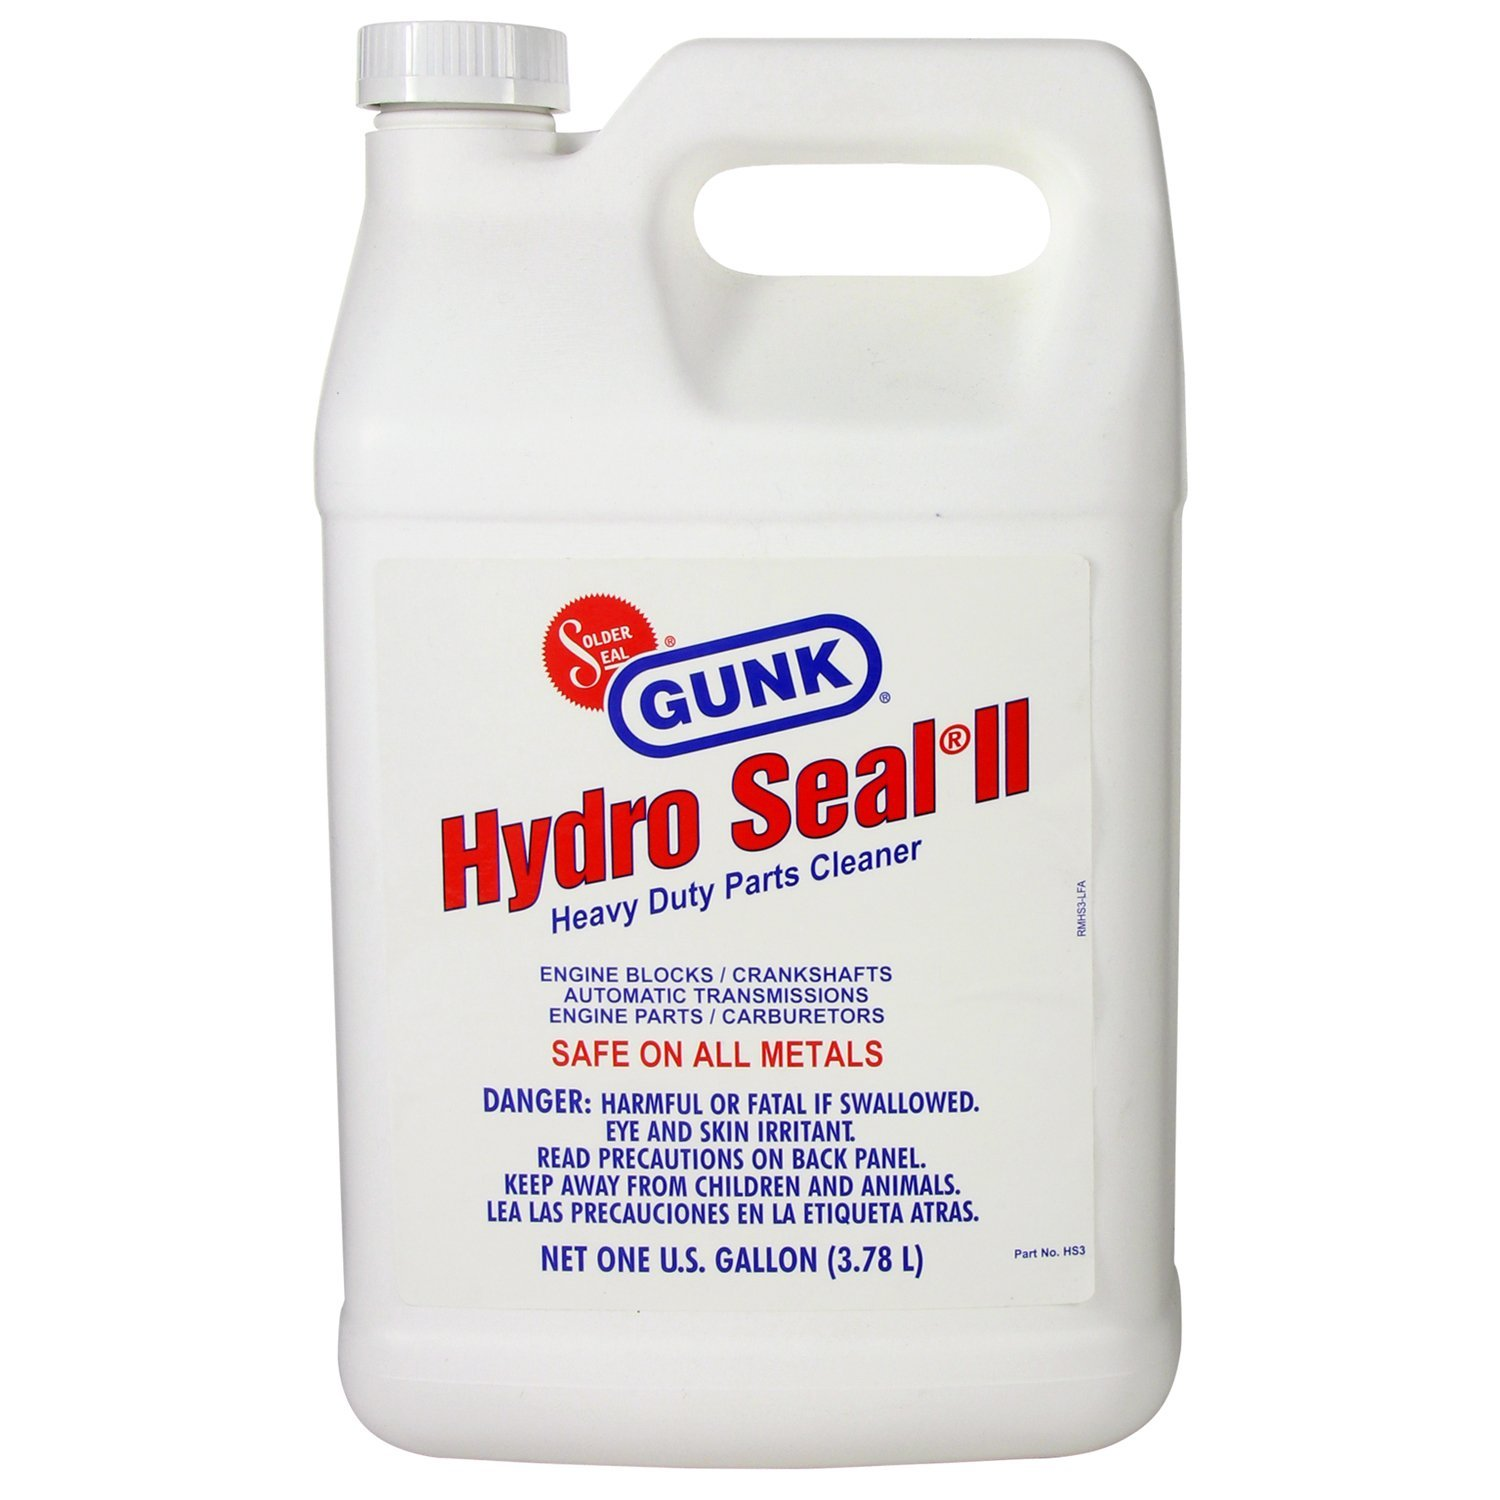 GUNK HS3-4PK Hydro Seal Heavy Duty Parts Cleaner - 1 Gallon, (Case of 4) by Gunk